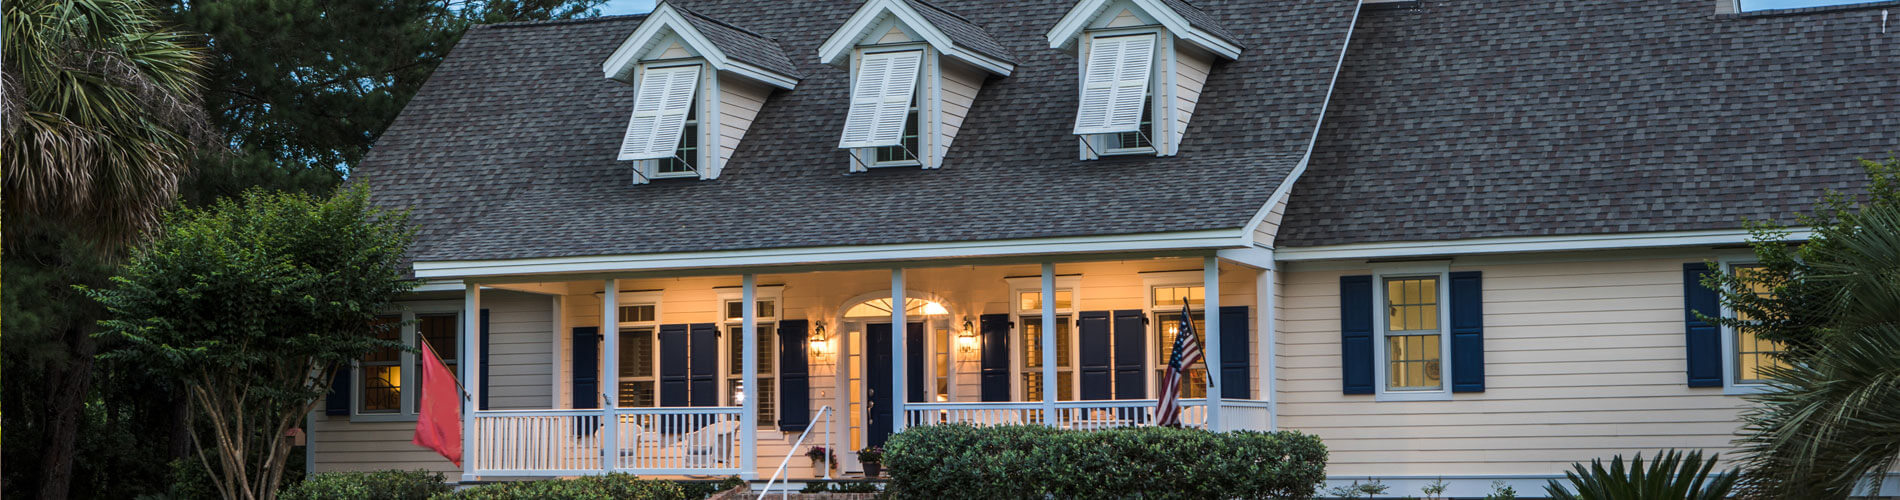 Home Remodeling Highland IL